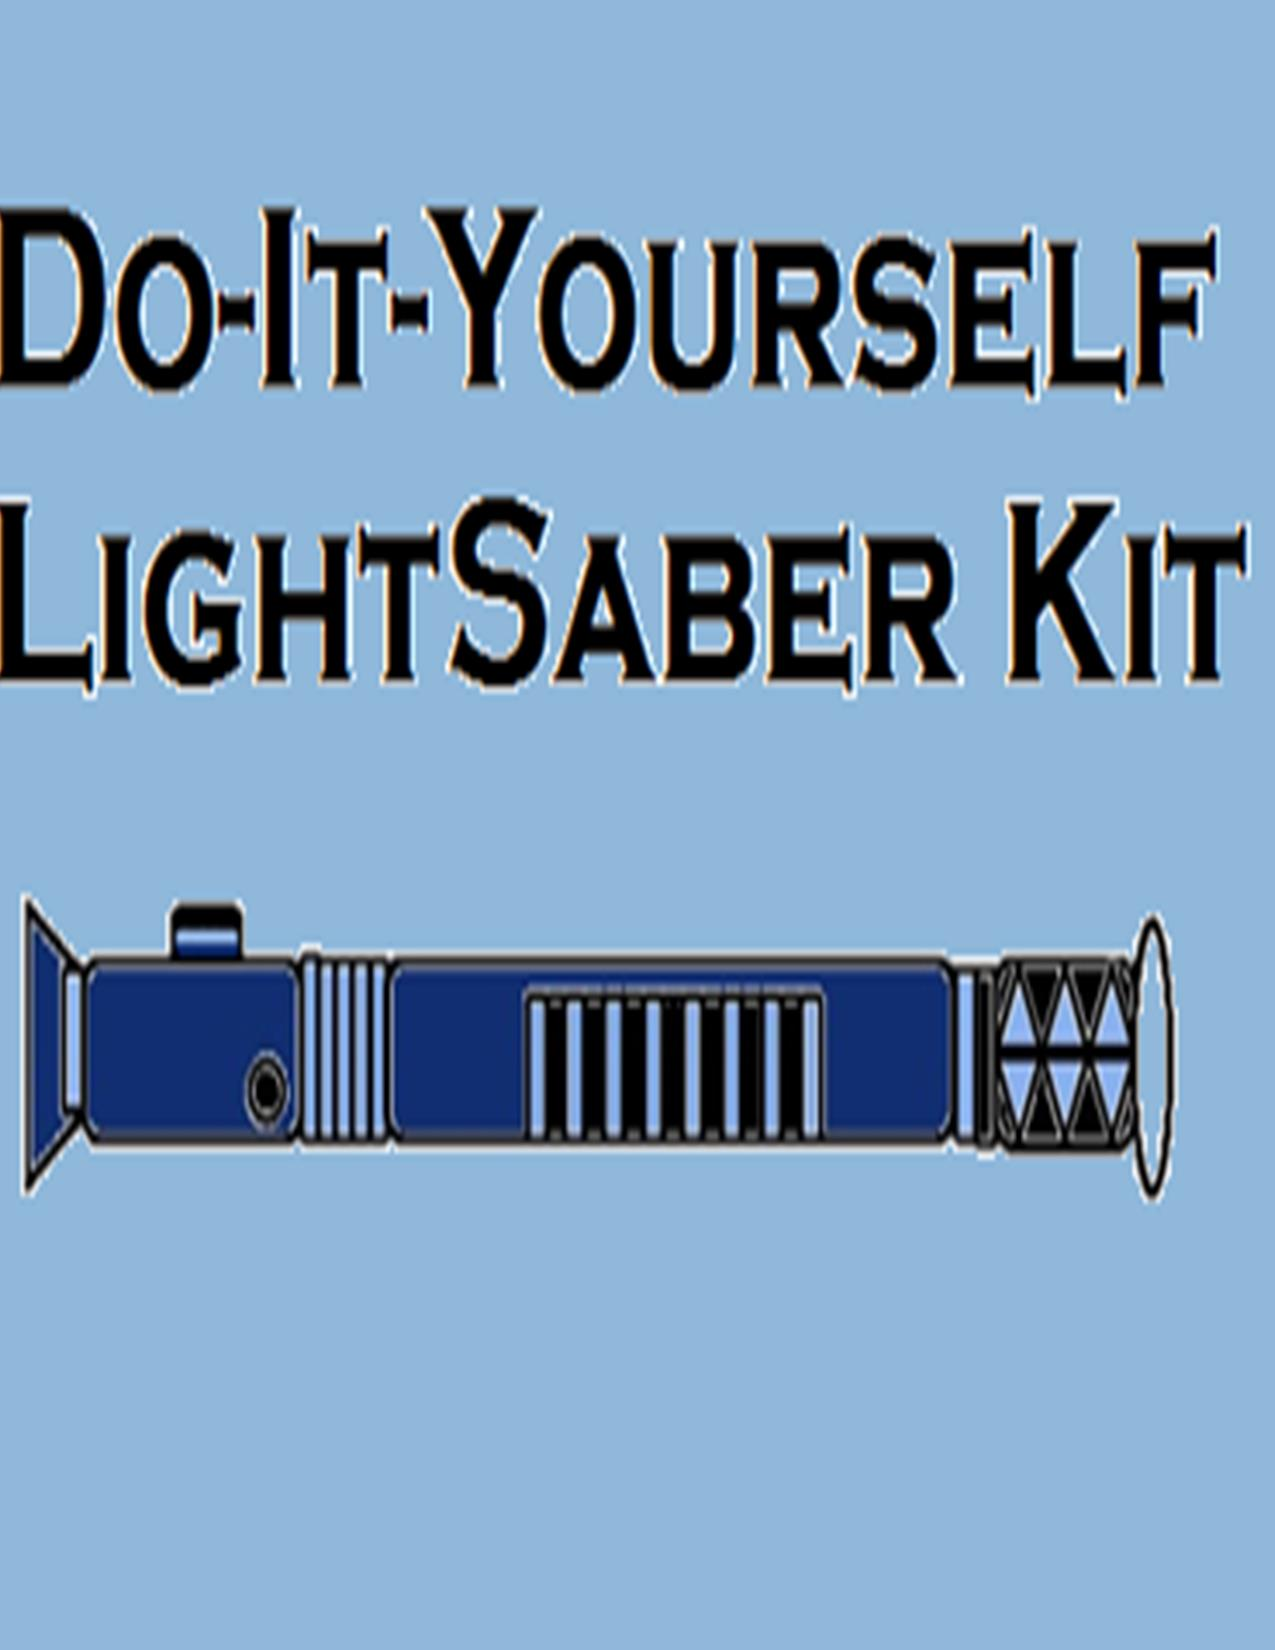 Do-It-Yourself LightSaber Kit